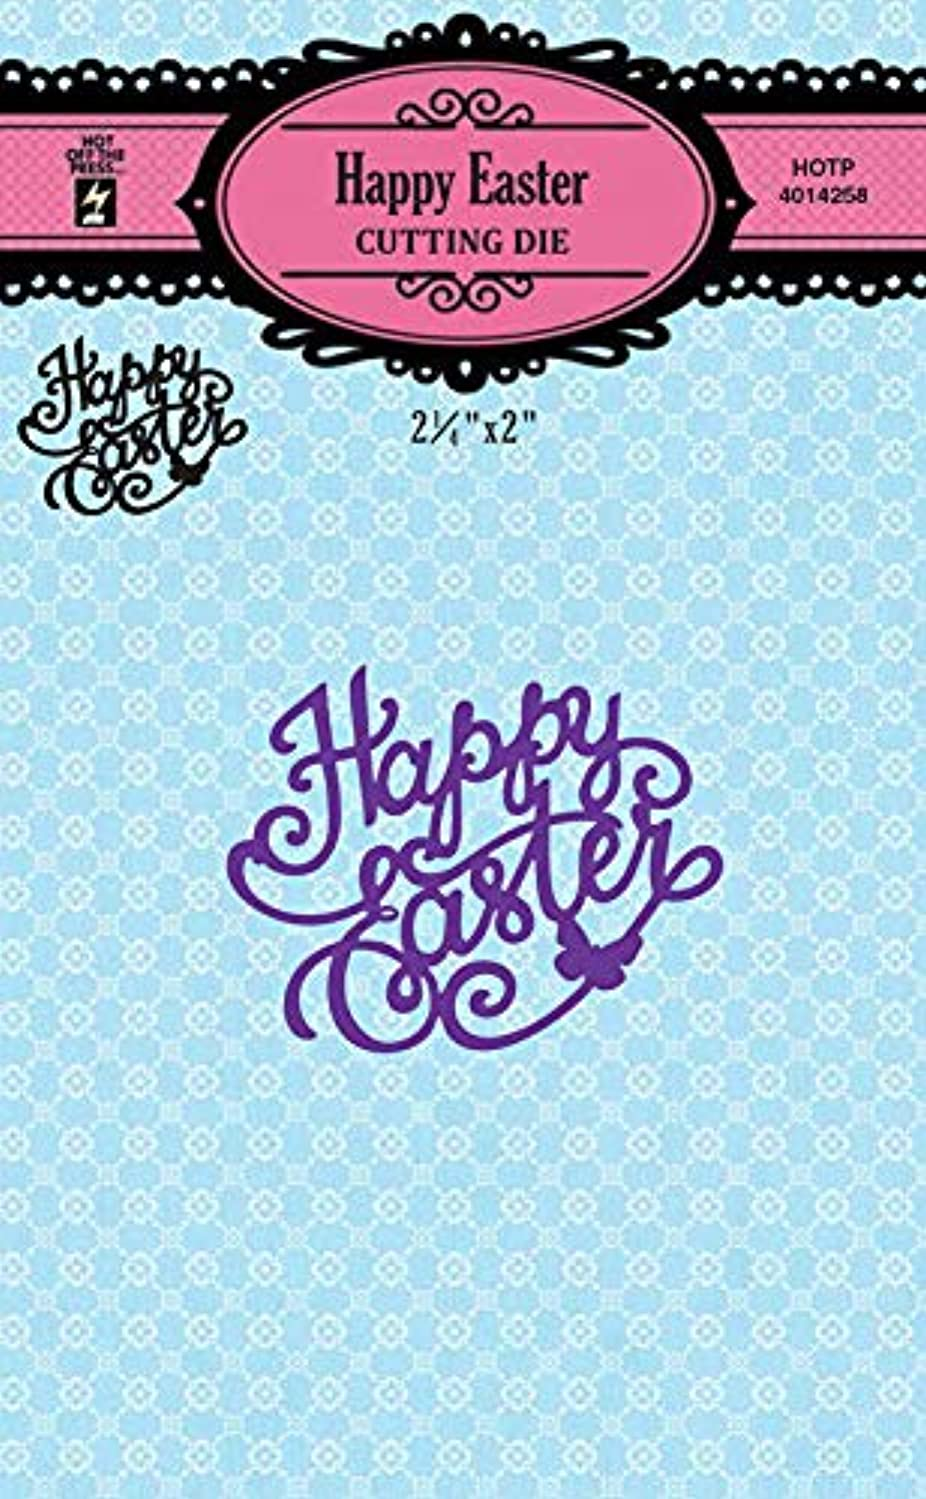 Cutting Die Set by Hot Off The Press | Scrapbooking, Card Making, Gifts and Home Decor – Inspiration at Your Finger Tips (Happy Easter)